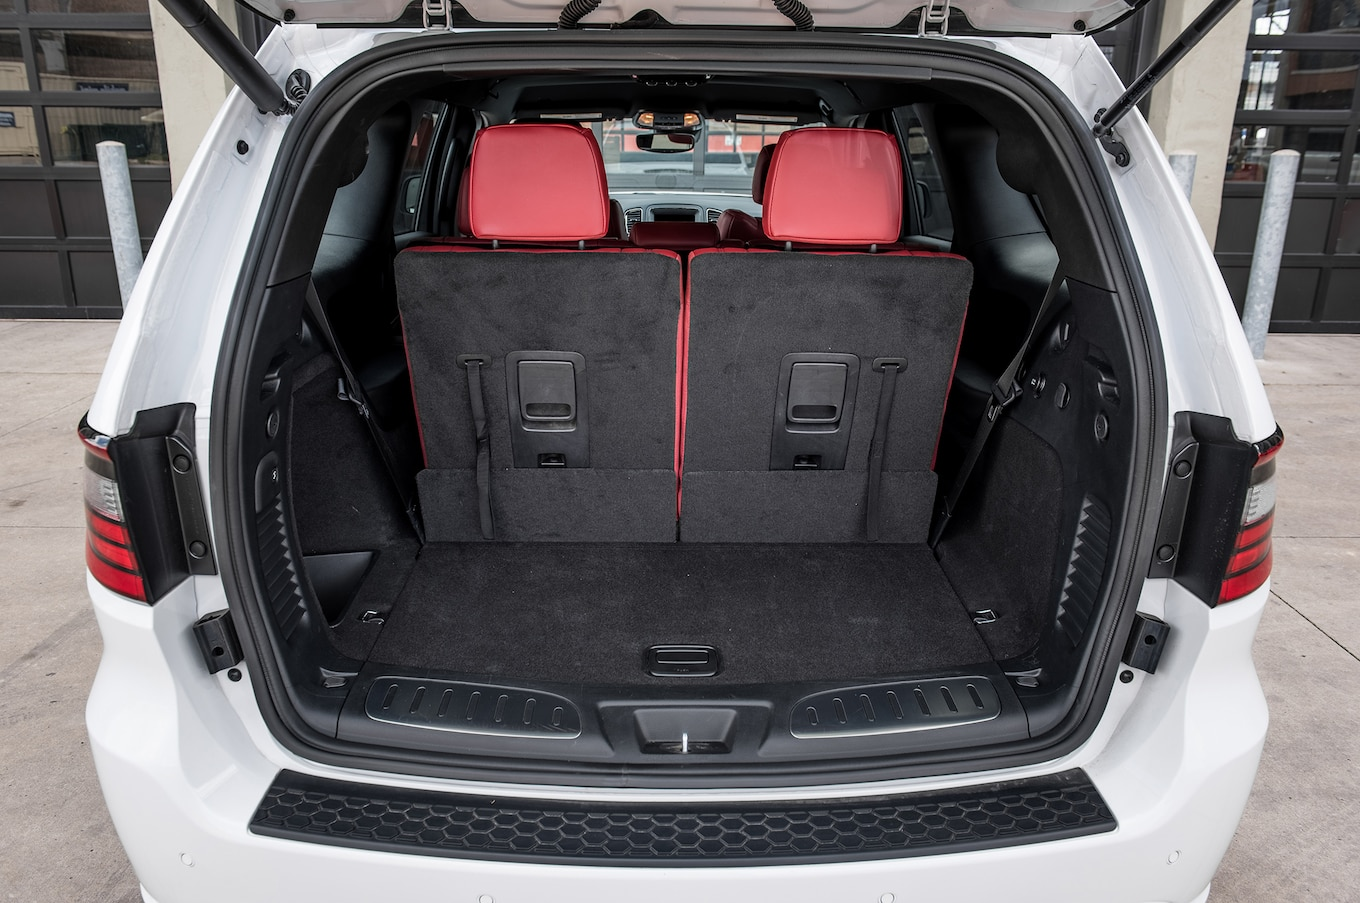 2017 Dodge Durango R T Specs Colors 0 60 0 100 Quarter Mile Drag And Top Speed Review Mycarspecs United States Usa